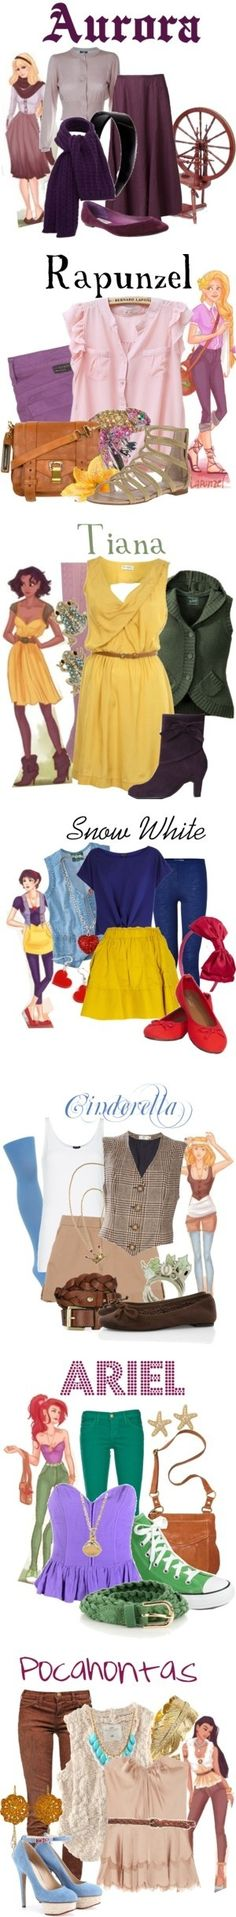 "Liked Aurora's the best-more casual cosplay """"Hipster Disney Princess Collection"" by "" Disney Princess Outfits, Disney Bound Outfits, Disney Inspired Outfits, Themed Outfits, Disney Style, Disney Princesses, Princess Fashion, Casual Disney Outfits, Princess Clothes"